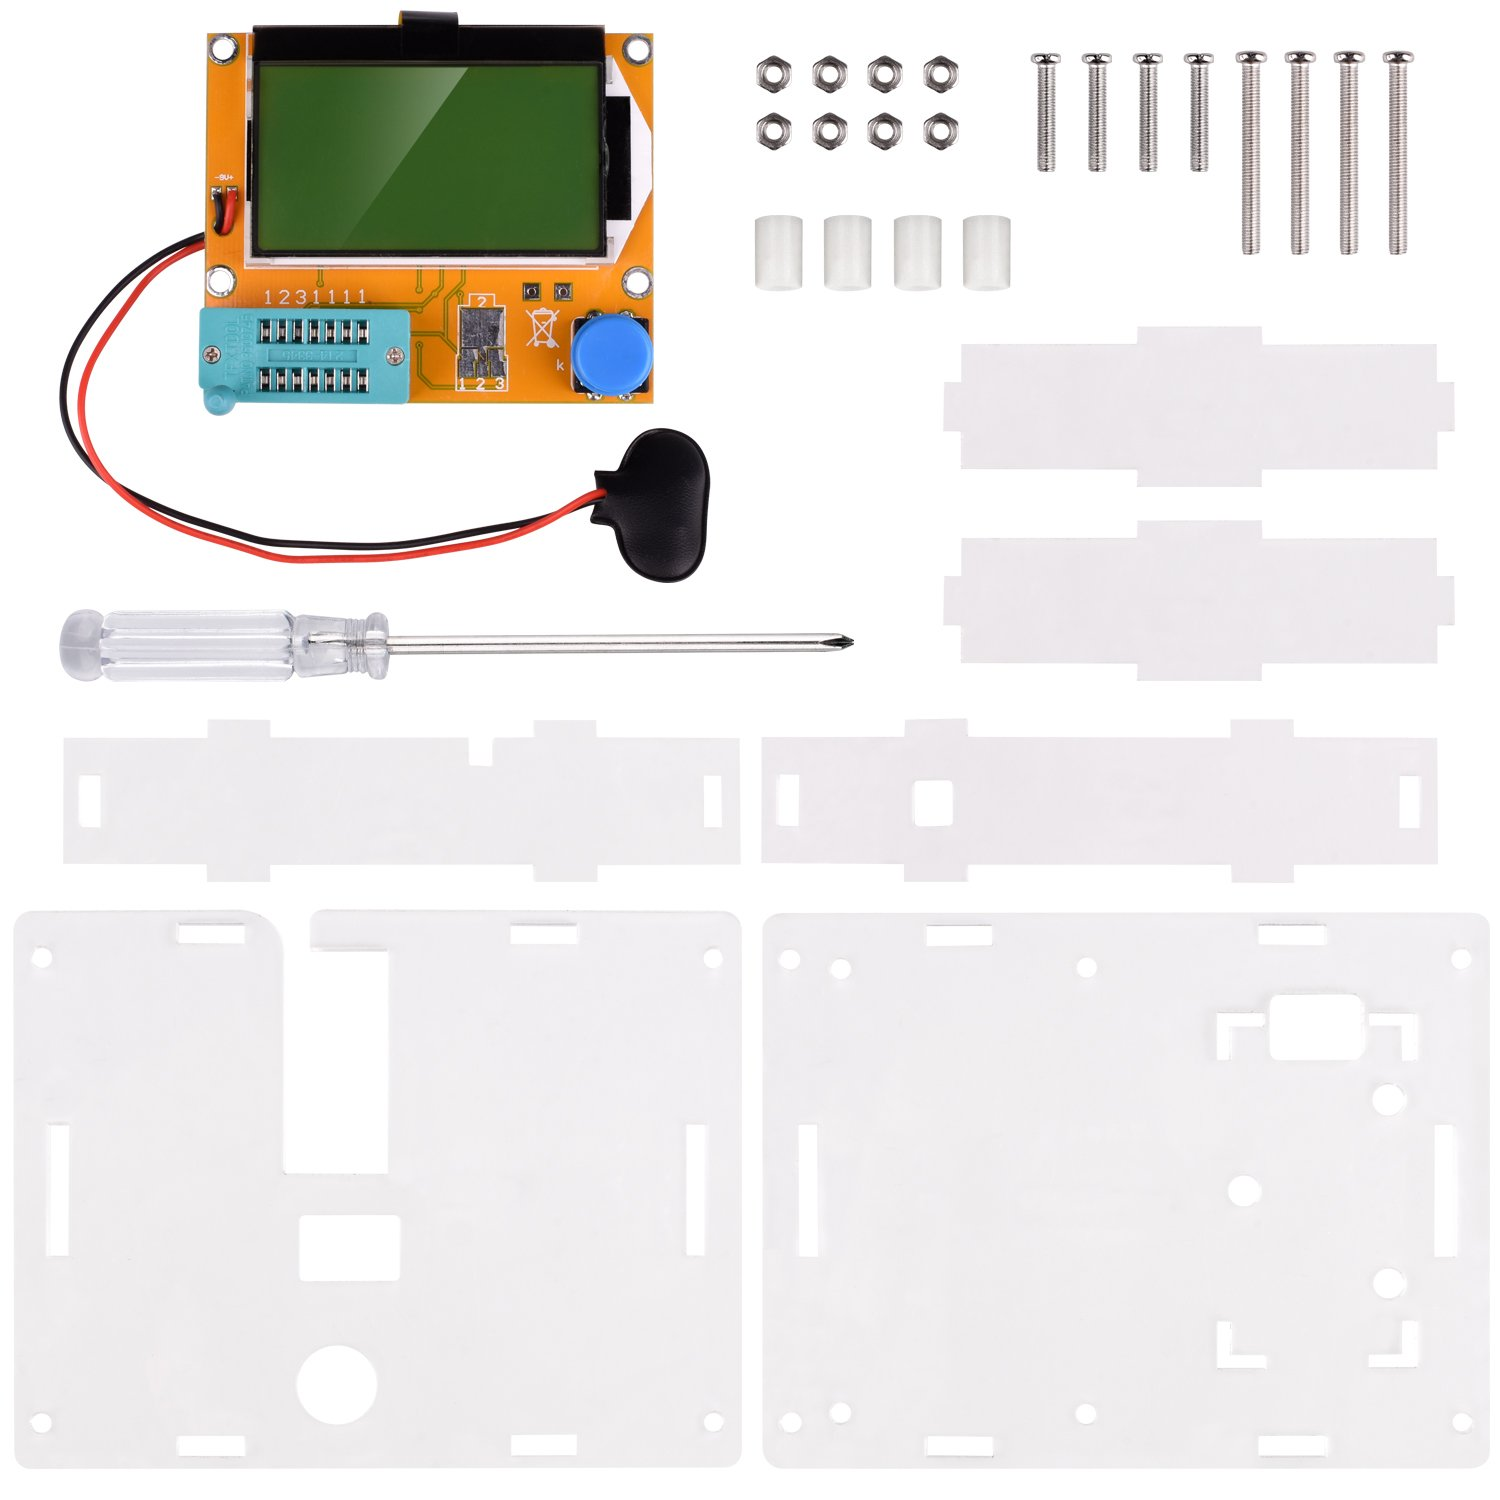 Multifunction Meter DIY kit, kuman Mega 328 Graphic transistor Tester, NPN PNP Diodes Triode Capacitor ESR SCR MOSFET Resistor Inductance LCD Display Checker with case and screwdriver K77 by Kuman (Image #2)